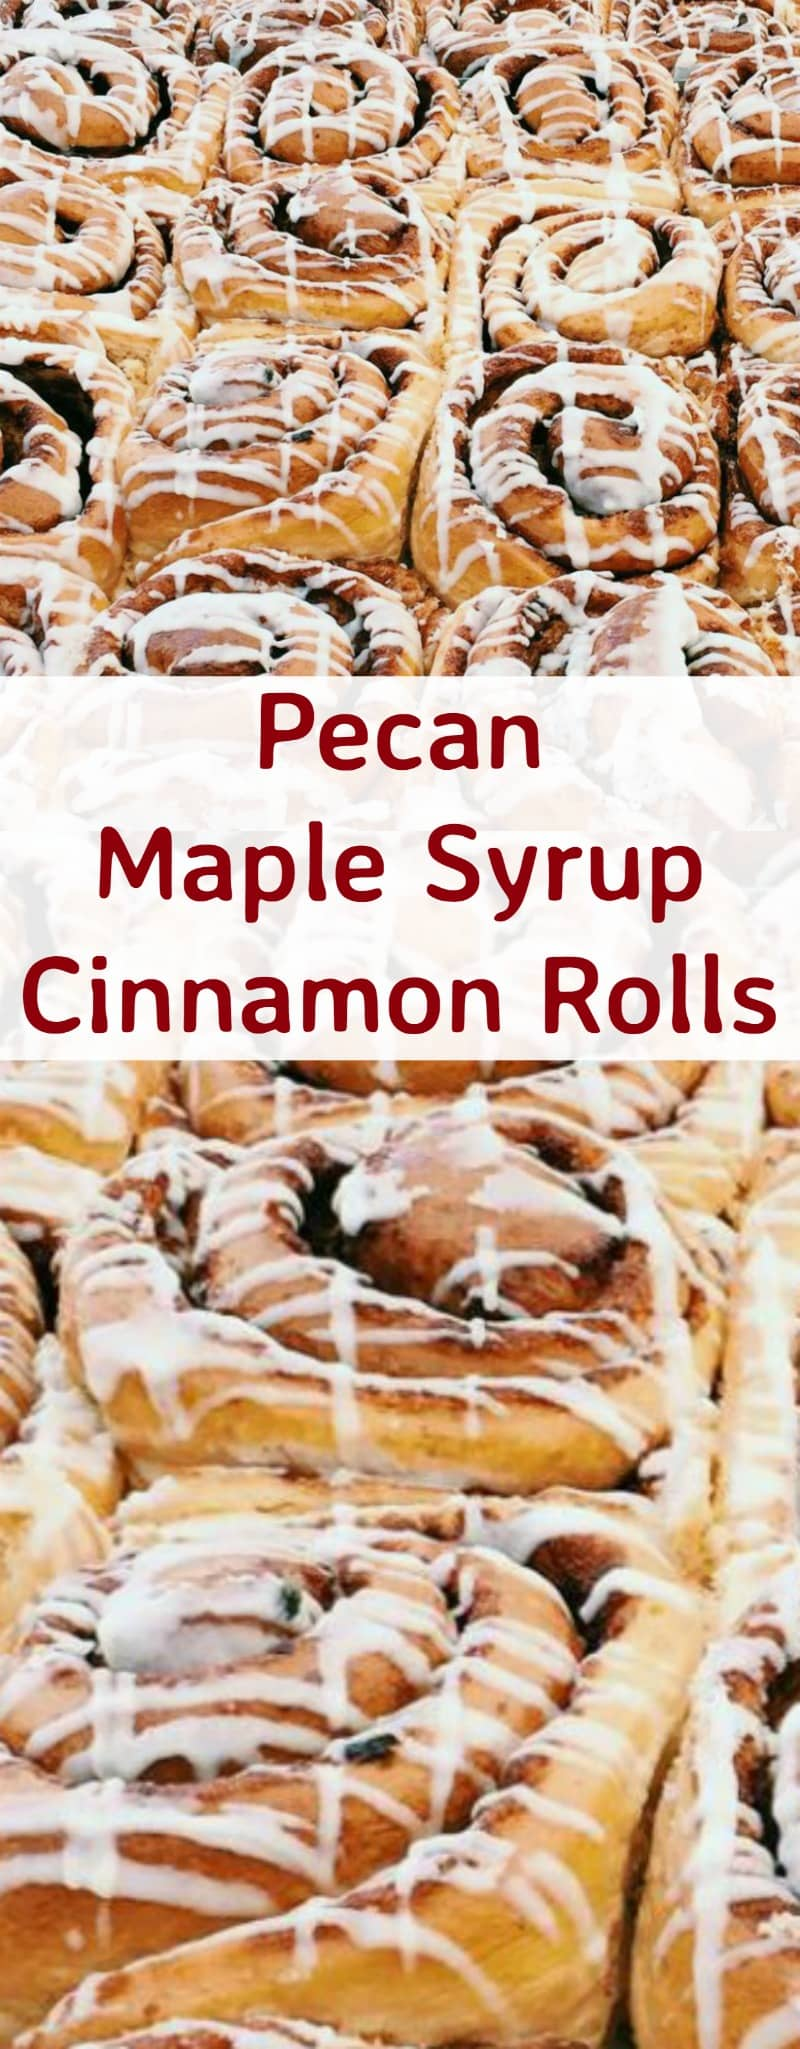 Pecan Maple Syrup Cinnamon Rolls. These are so yummy! These rolls are soft, sticky, loaded with pecans and oozing with delicious Maple Syrup. So delicious served warm from the oven!   Lovefoodies.com